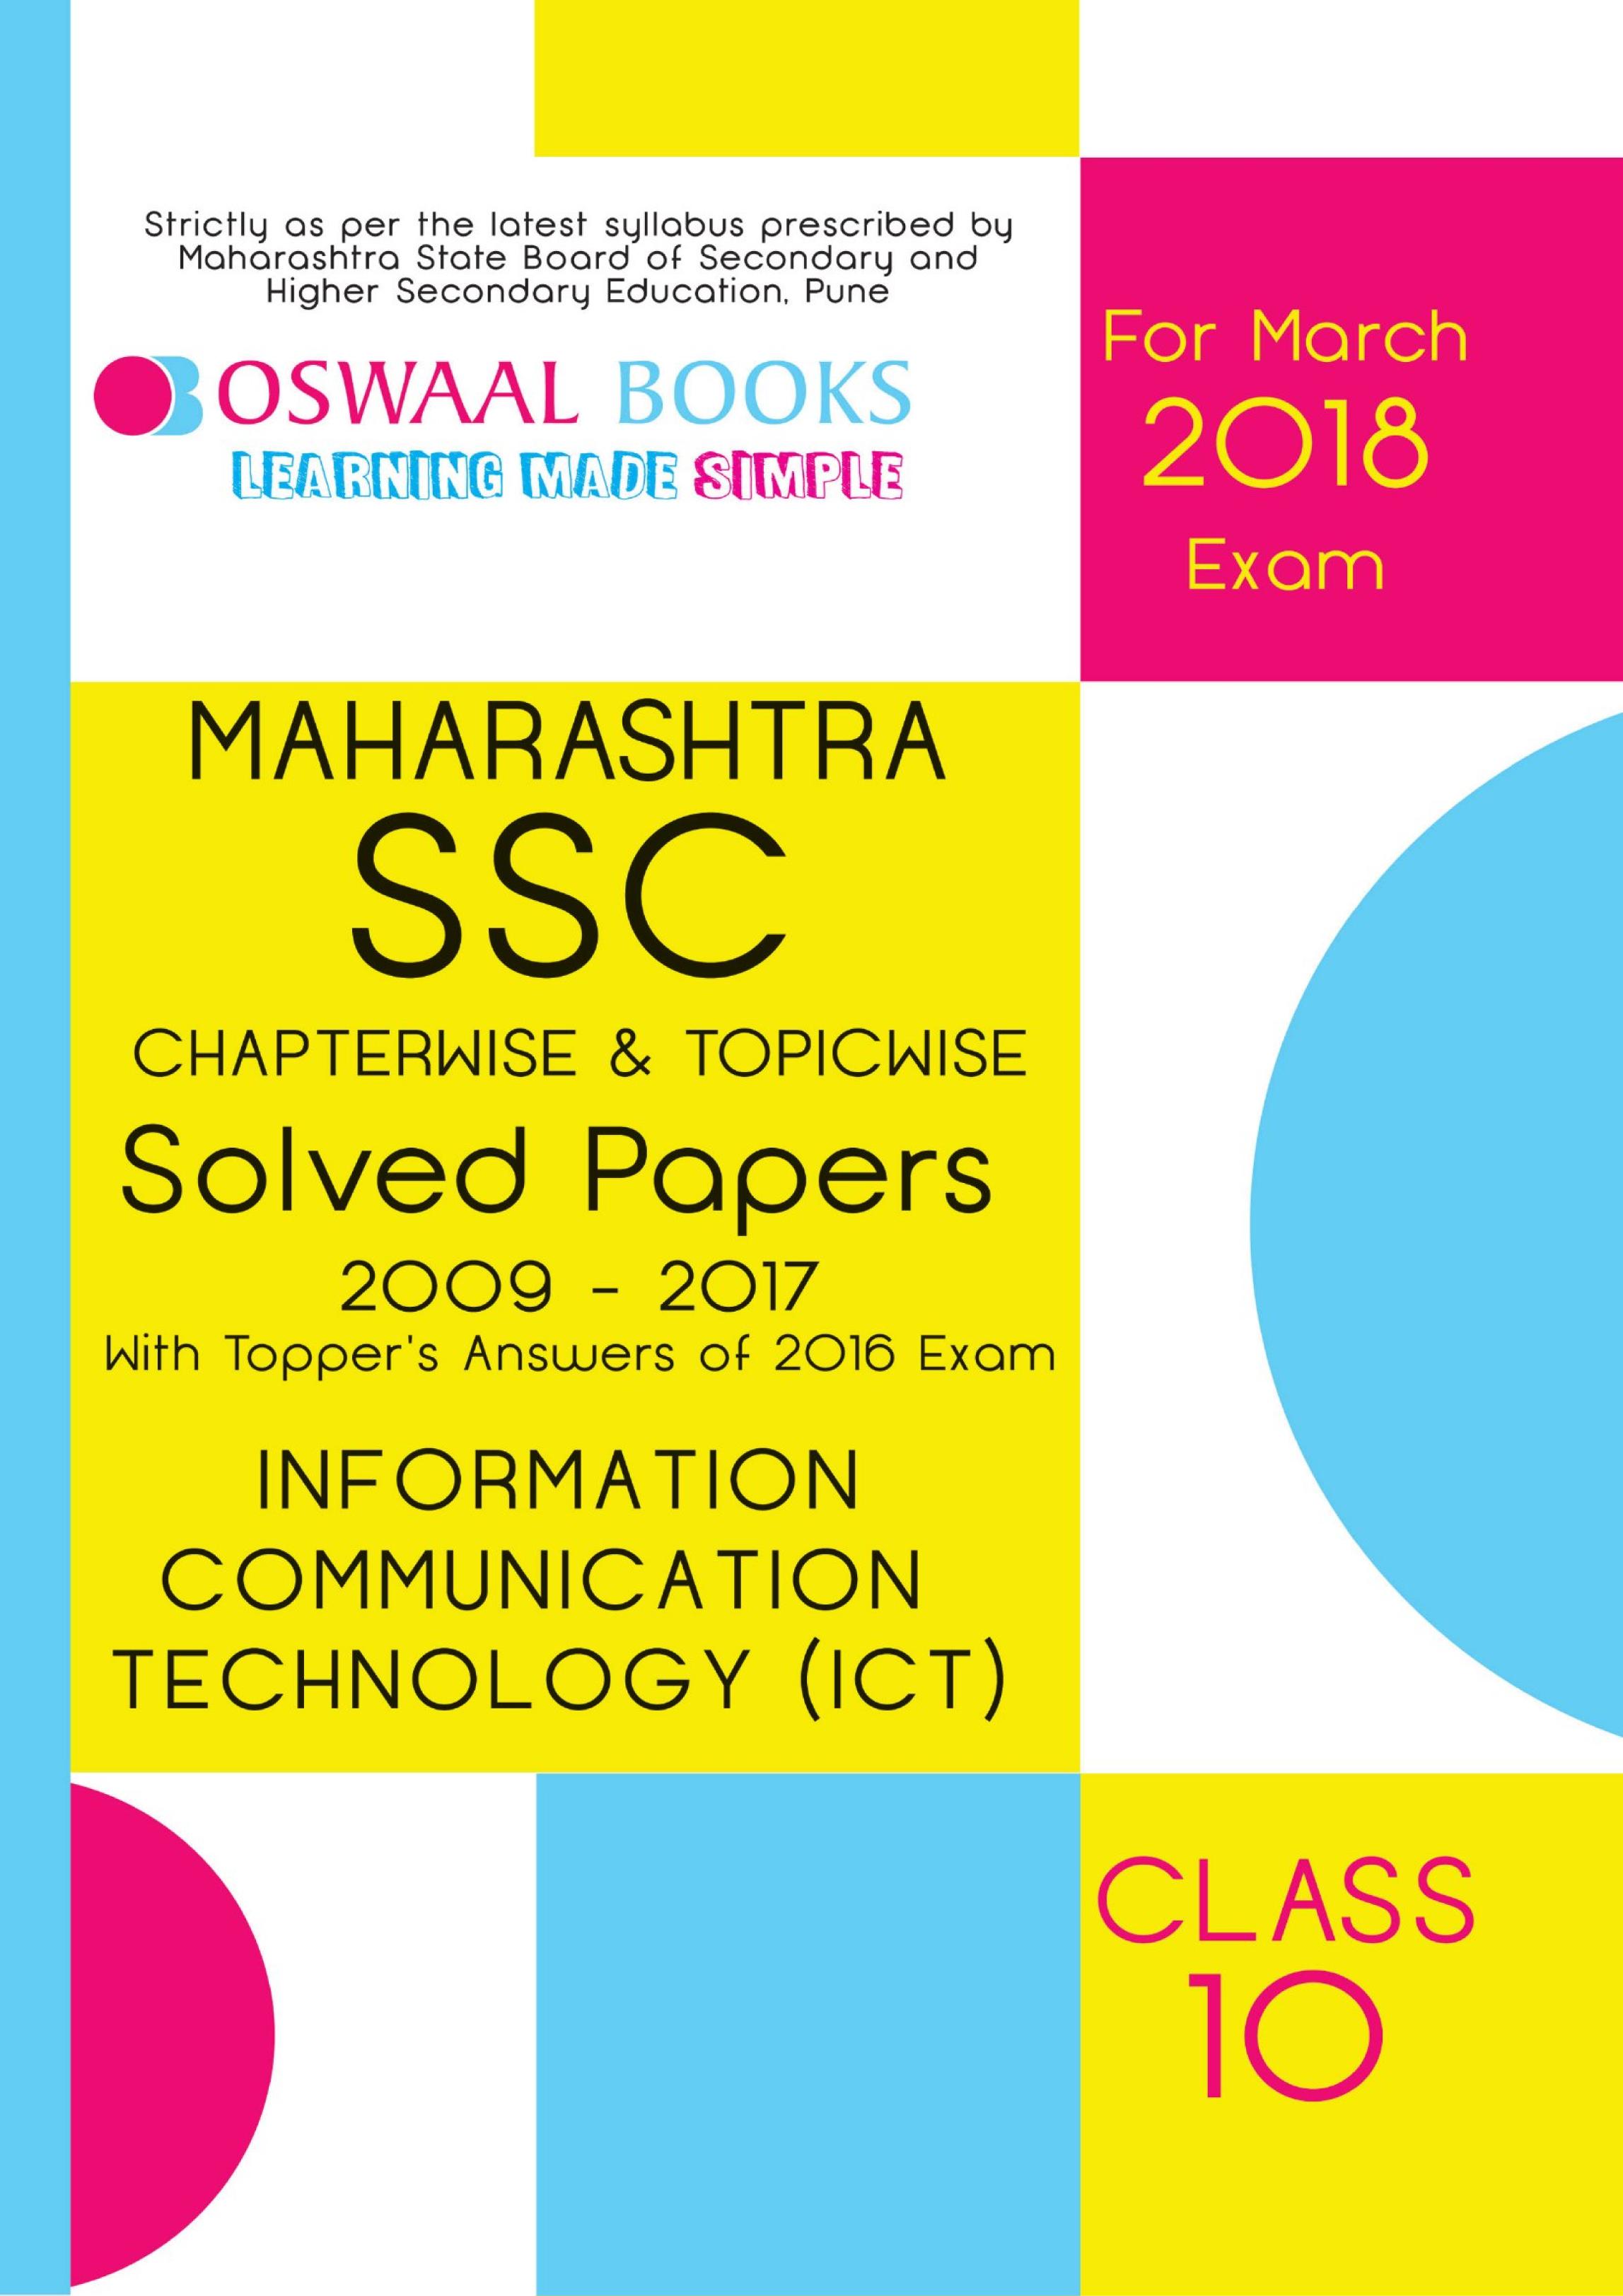 Oswaal Maharashtra SSC Chapterwise And Topicwise Solved Papers With Topper\'s Answers Class 10 Information Communication Technology For 2018 Exam - Page 1